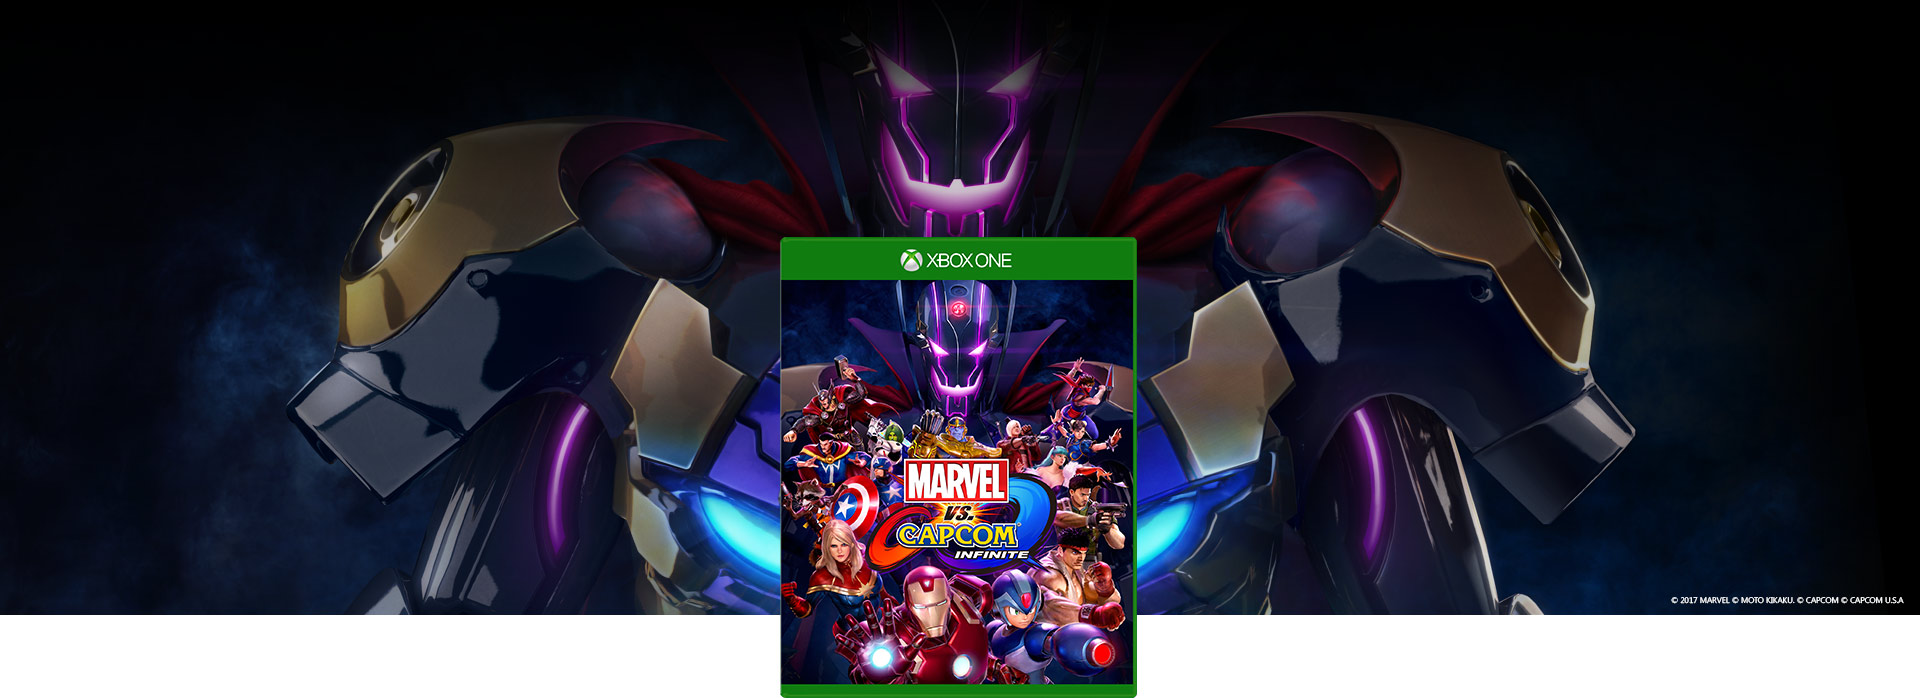 Marvel vs Capcom Infinite 包裝圖